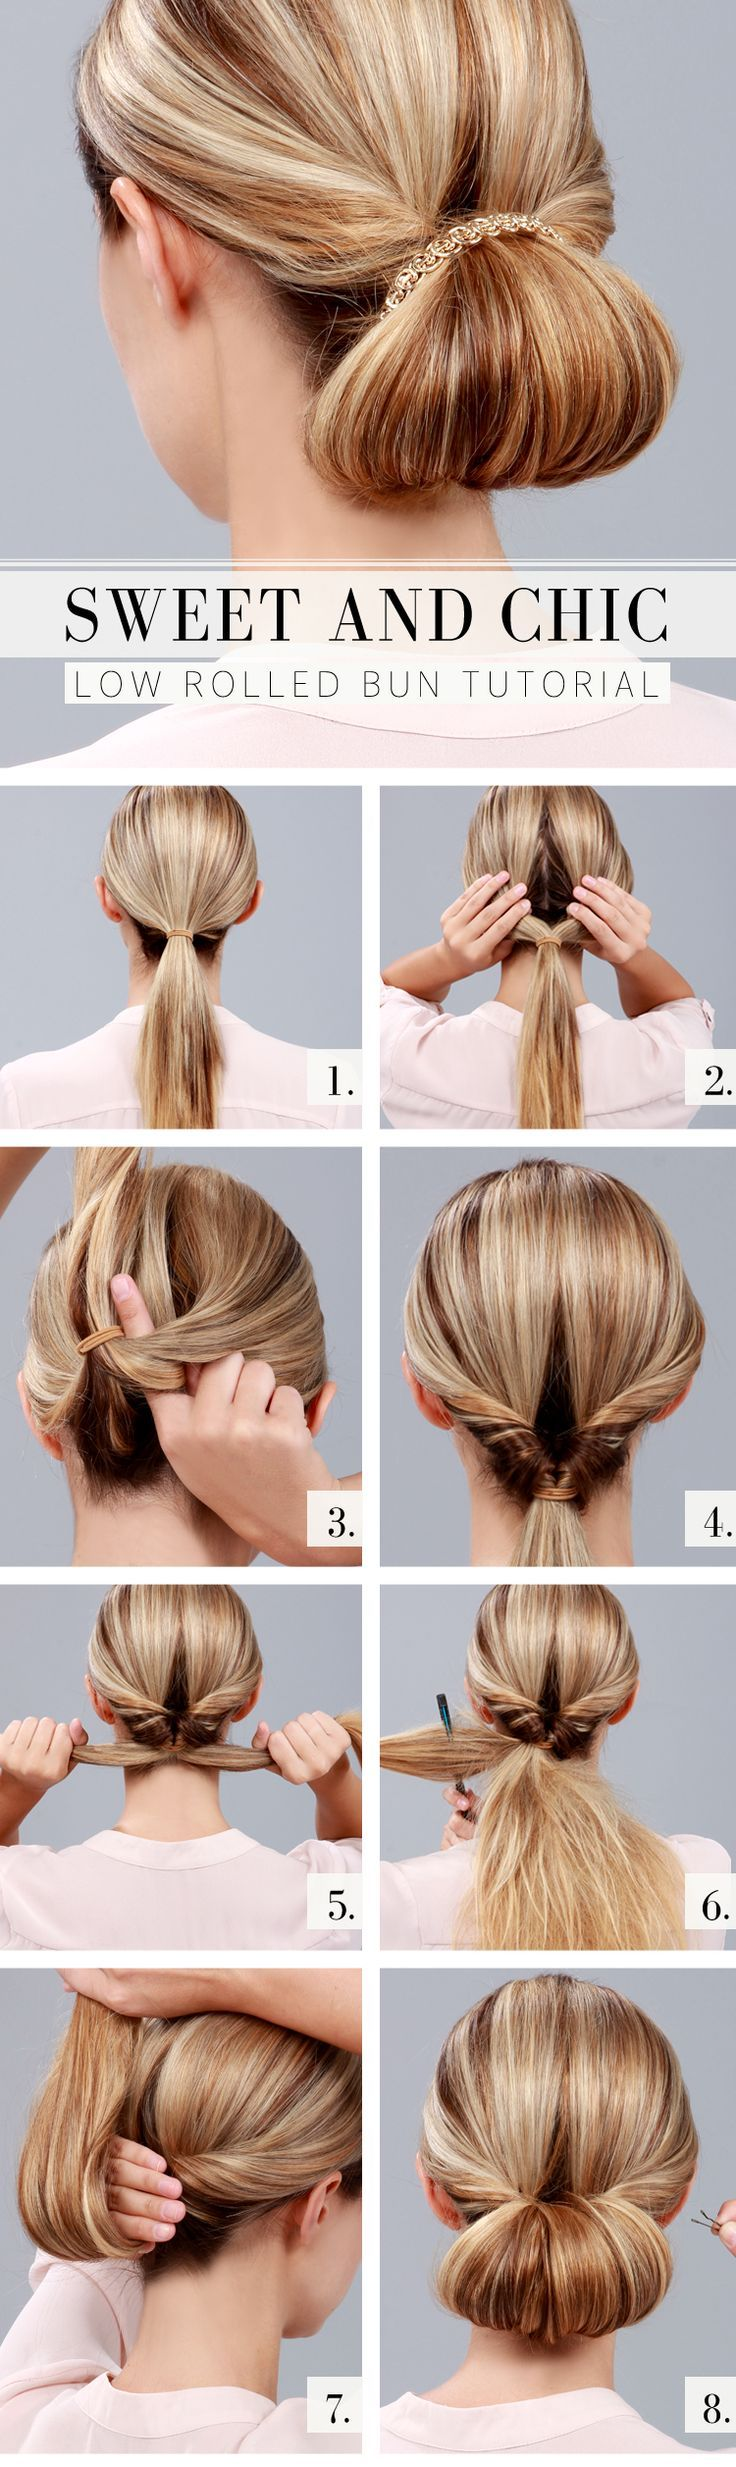 Top superfast hairstyles to do in your car nice diy tutorial